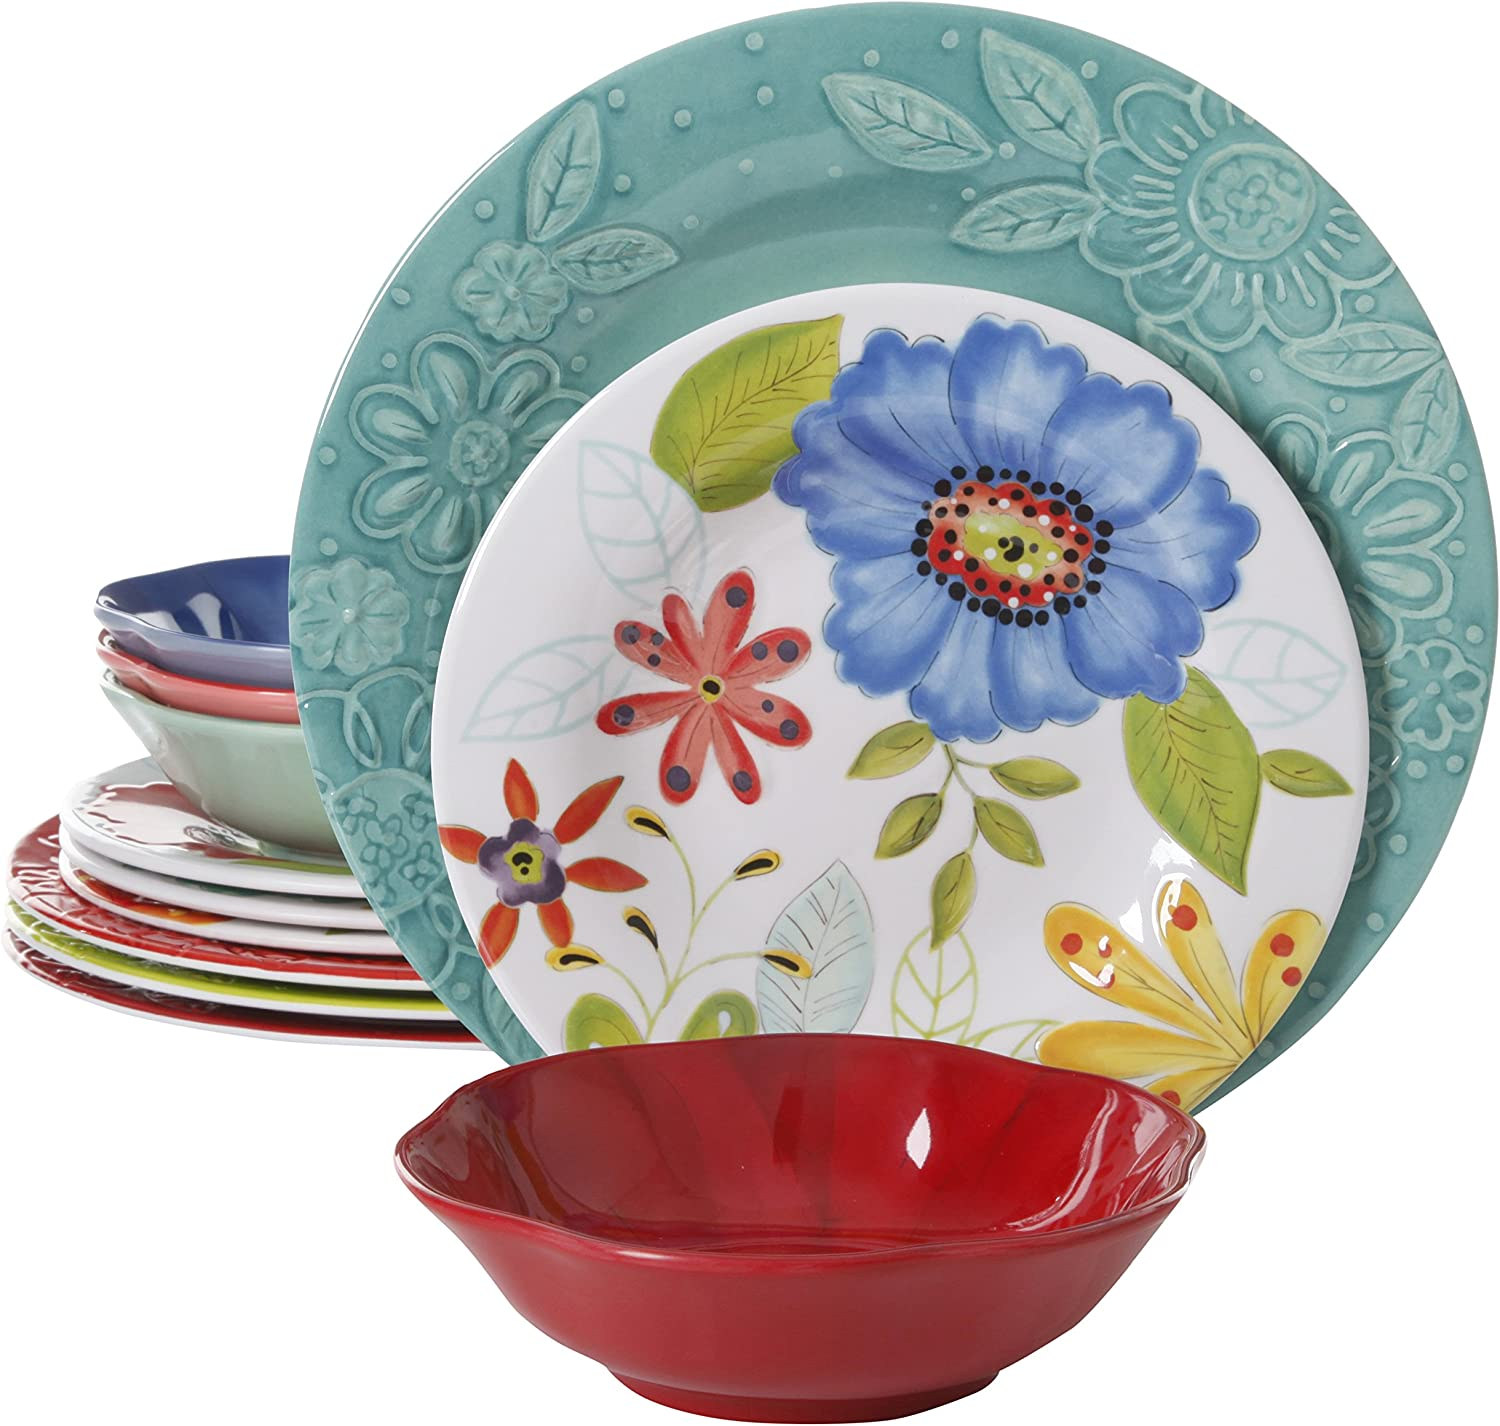 Gibson Studio 116500.12 Flora 12 Piece Melamine Dinnerware Set, Mix and Match